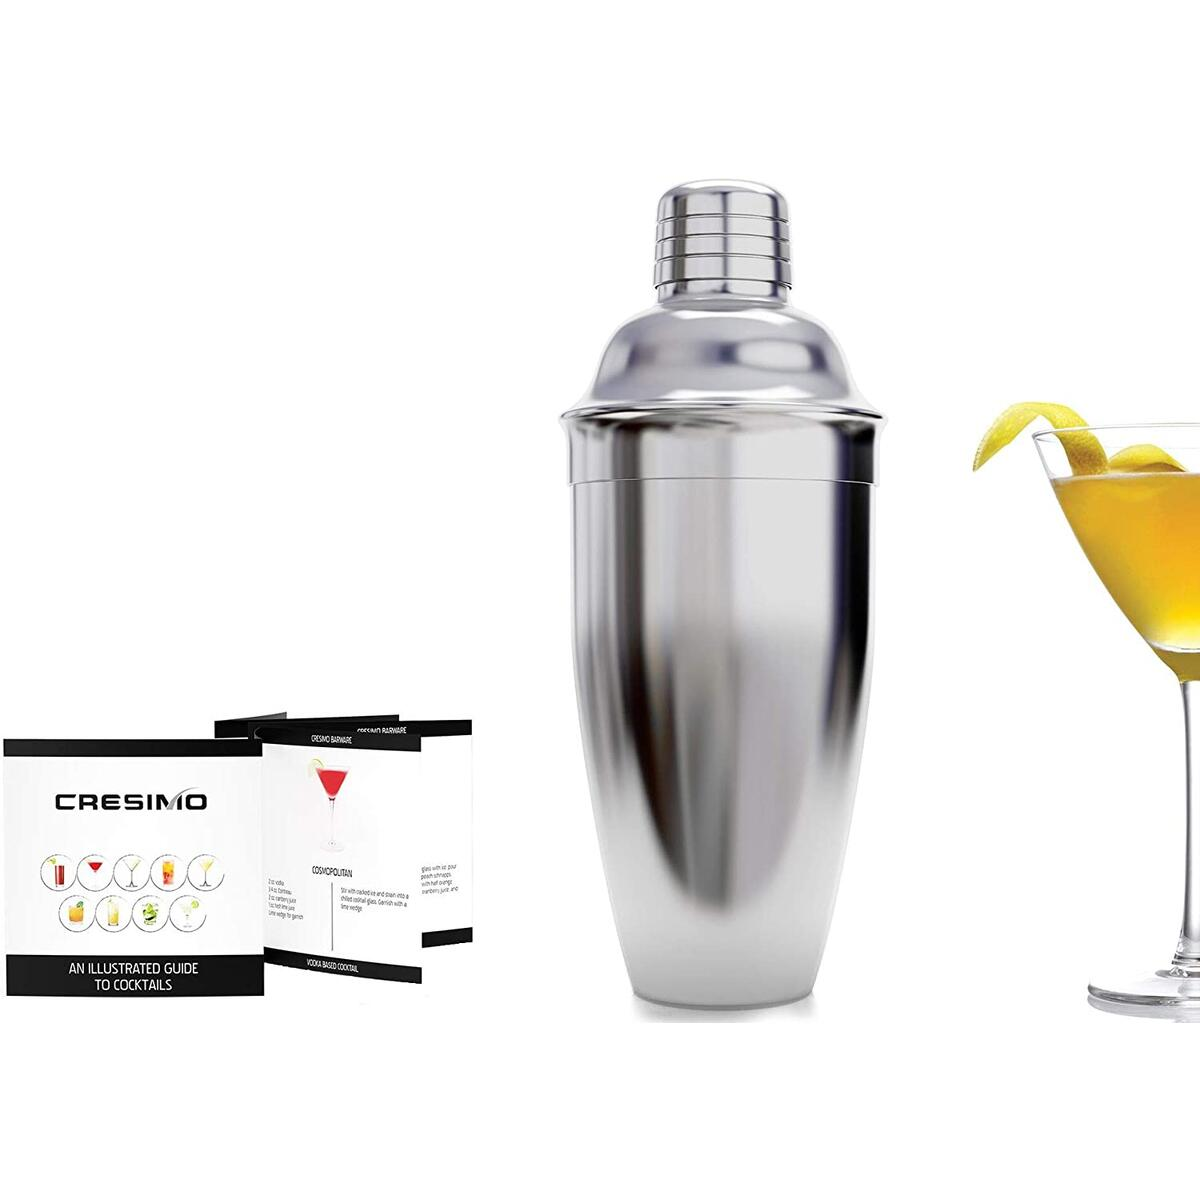 Cresimo 24 Ounce Cocktail Shaker Bar Set with Accessories - Martini Kit with Drink Recipes Booklet - Professional Stainless Steel Bar Tools - Built-in Bartender Strainer (1 Piece Set)